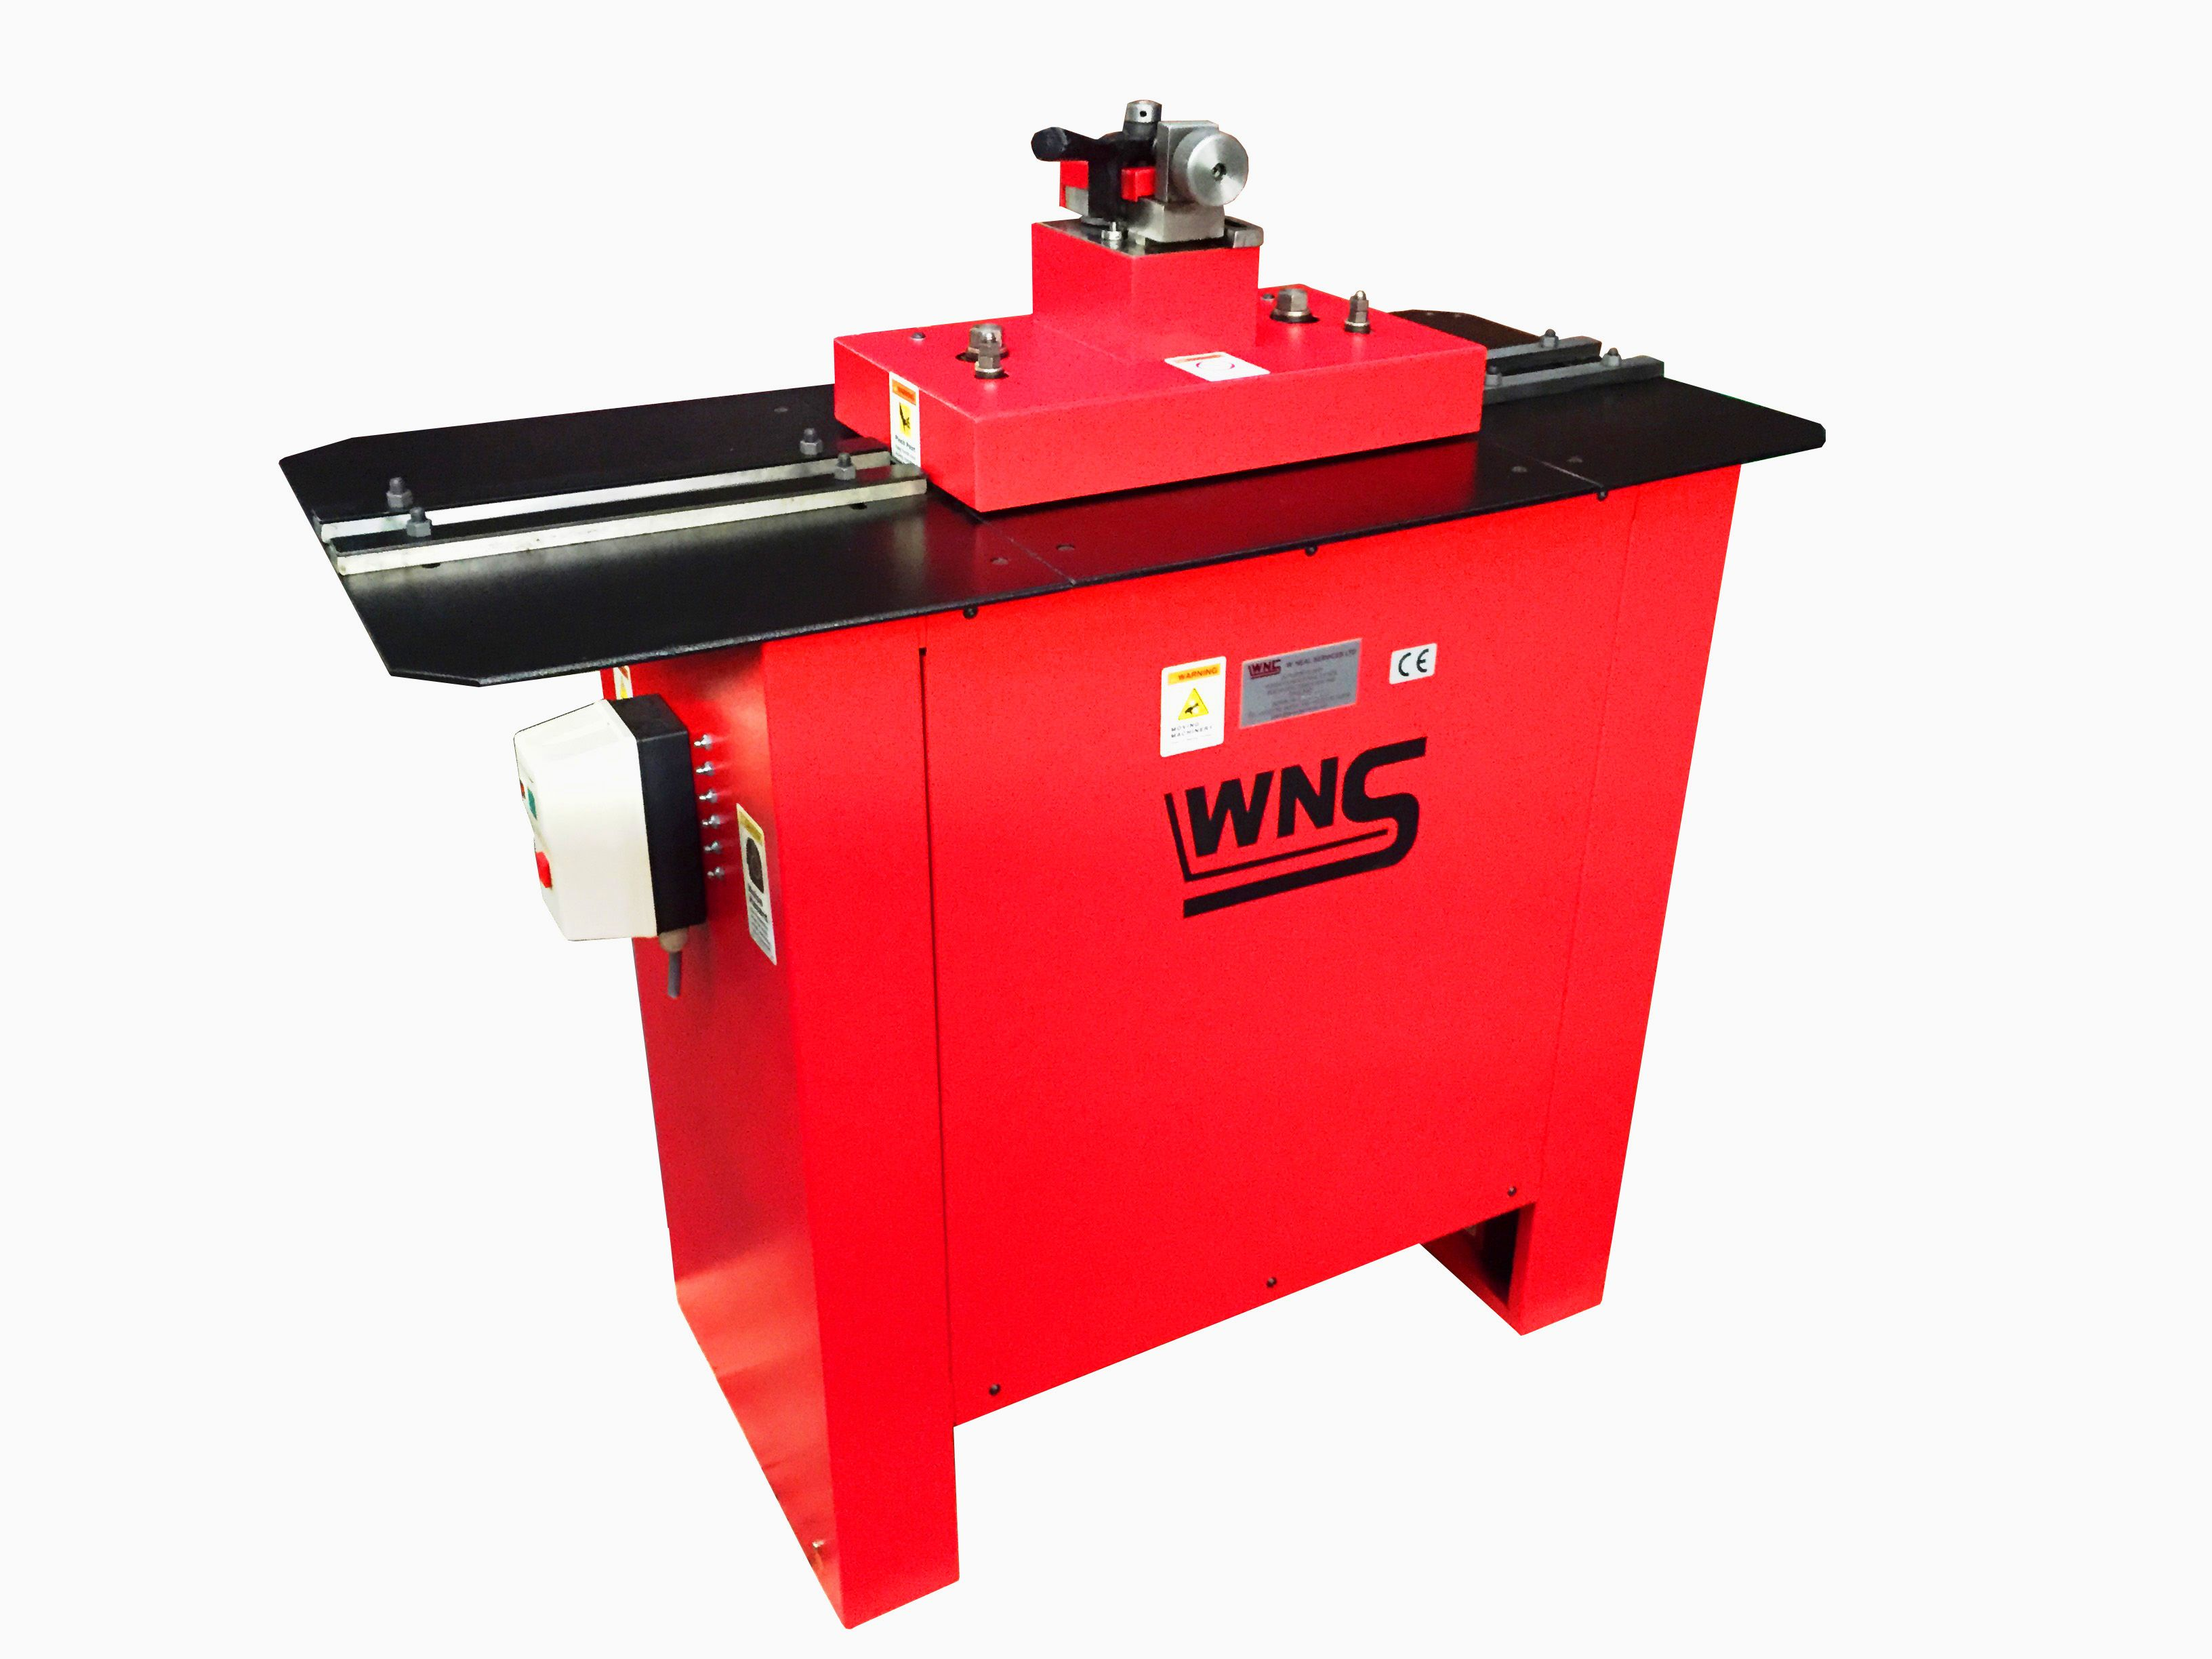 Wns 20swg 1 0mm Pittsburgh Lock Rollformer With Flanging Attachment Rf20 Manufactured By W Neal Services Ltd Industrial Hvac Manufacturing Sheet Metal